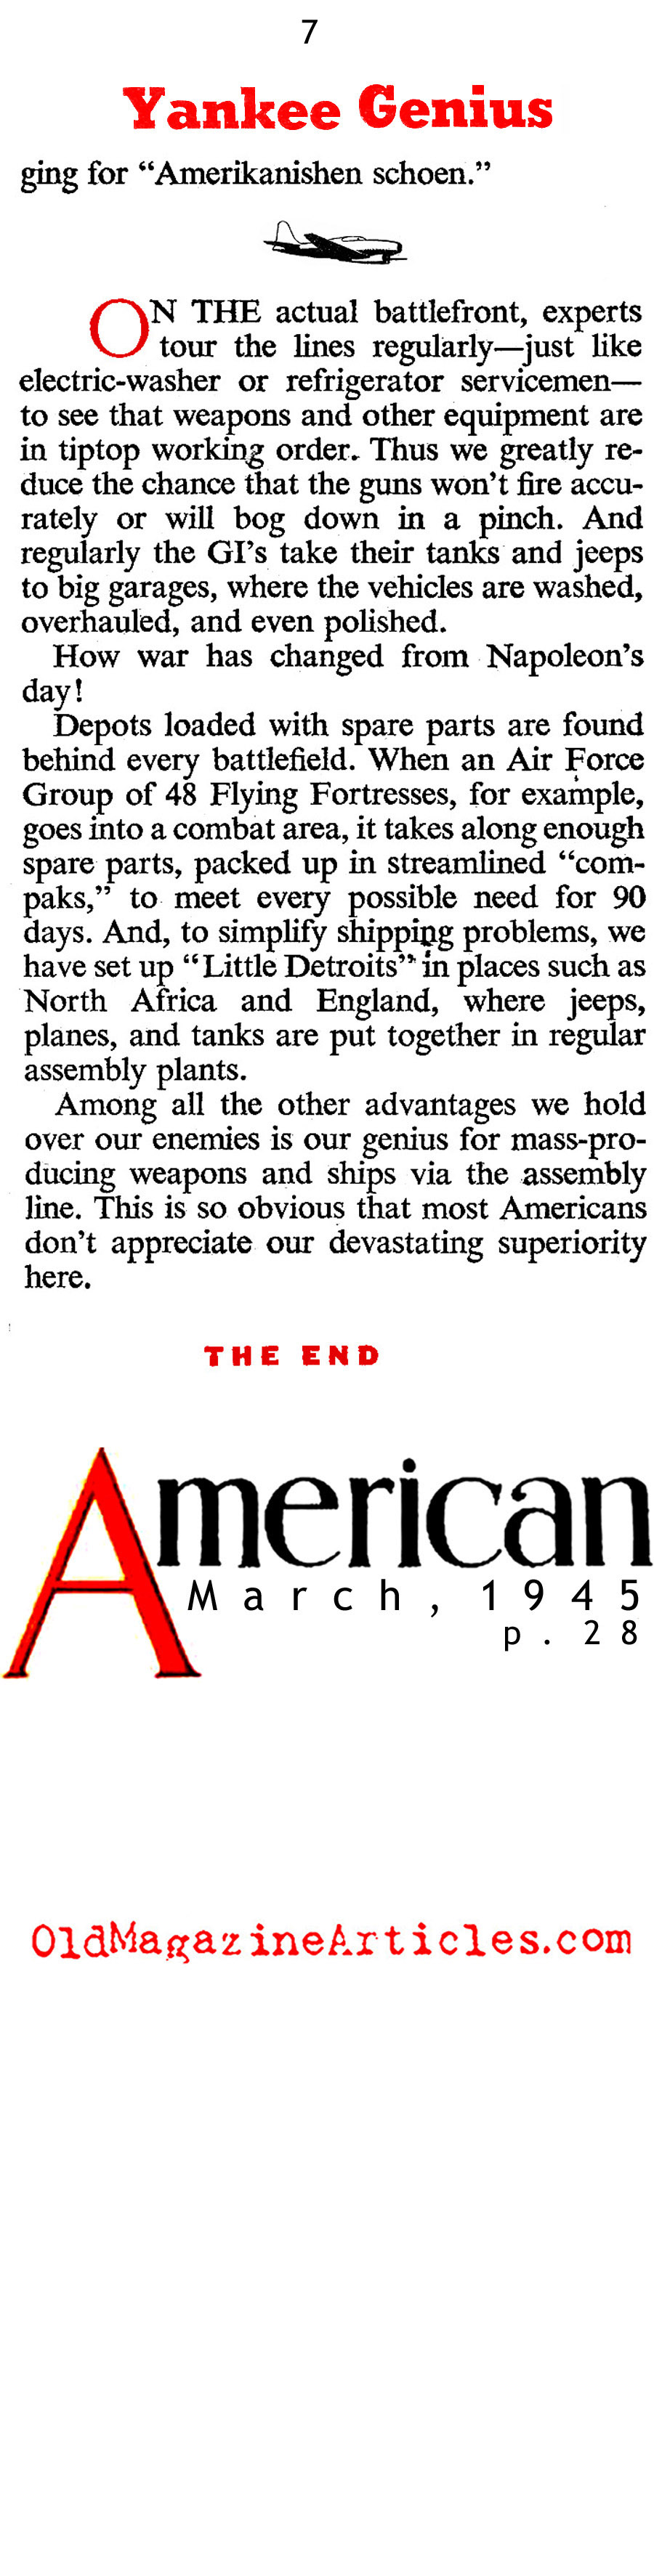 The American Way of War (American Magazine, 1945)